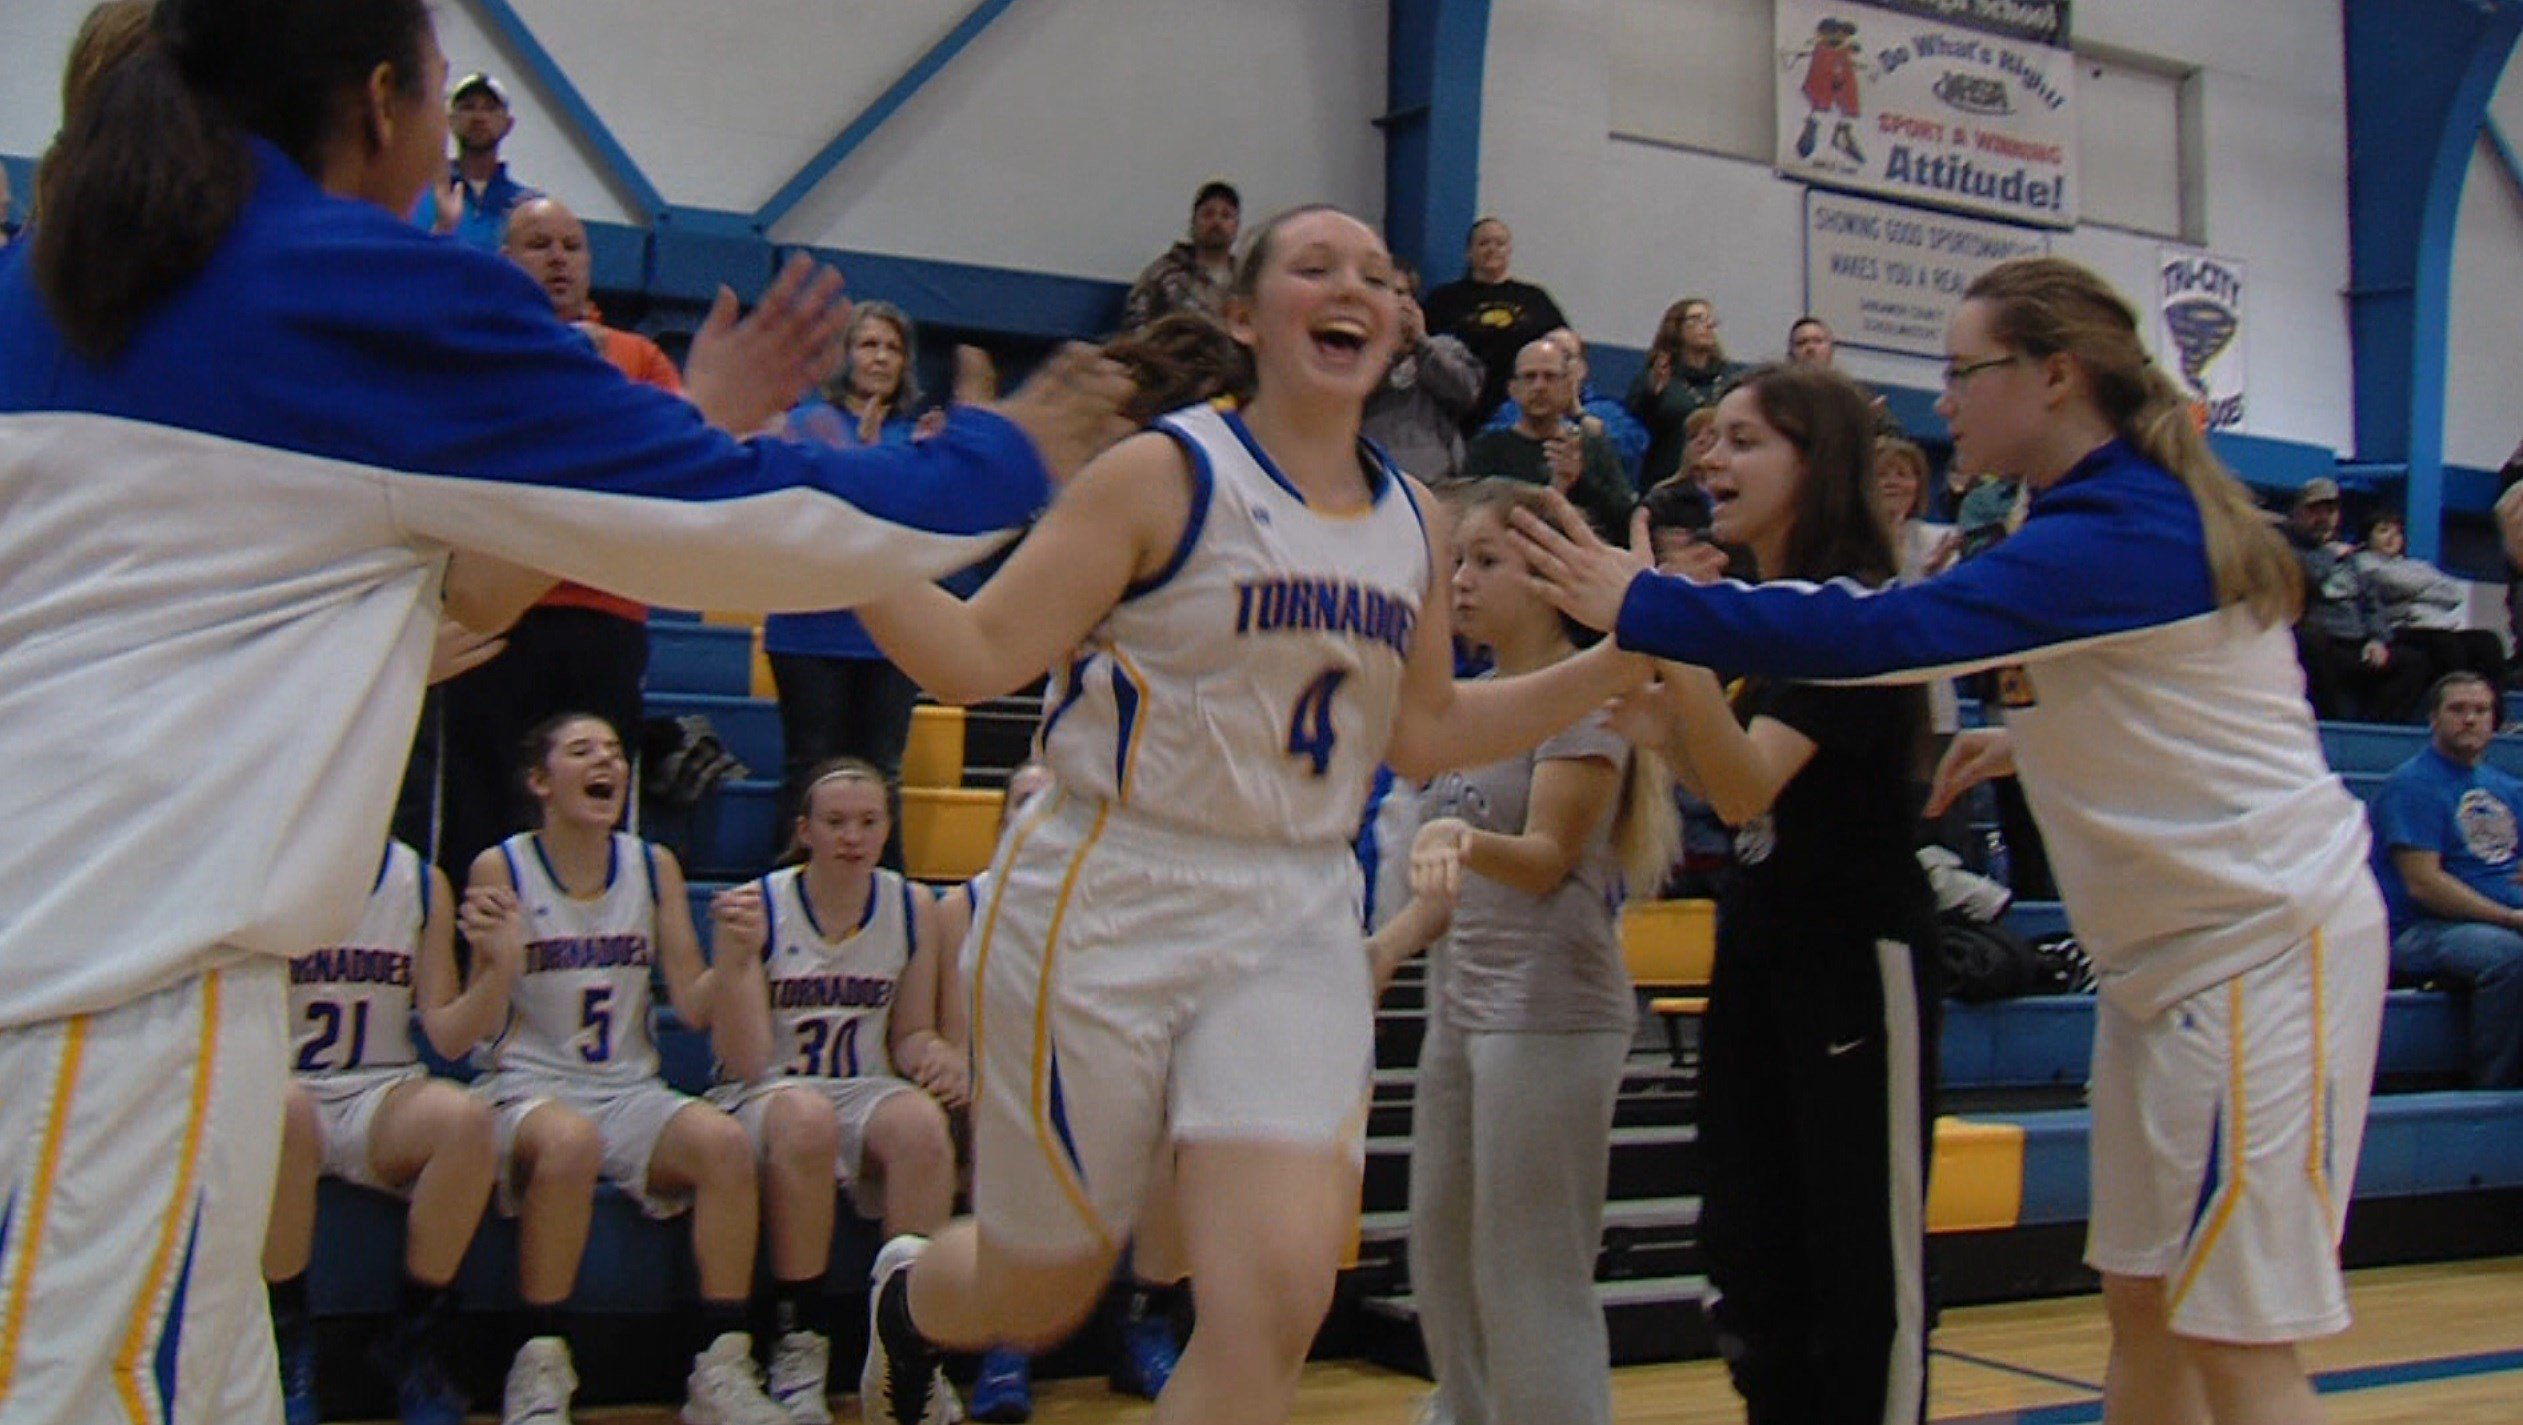 Tri-City/Sangamon Valley senior Aubrey Hunt is introduced before Thursday night's game against Athens. The multi-sport star signed to play softball at Illinois Central College at halftime of the JV game.